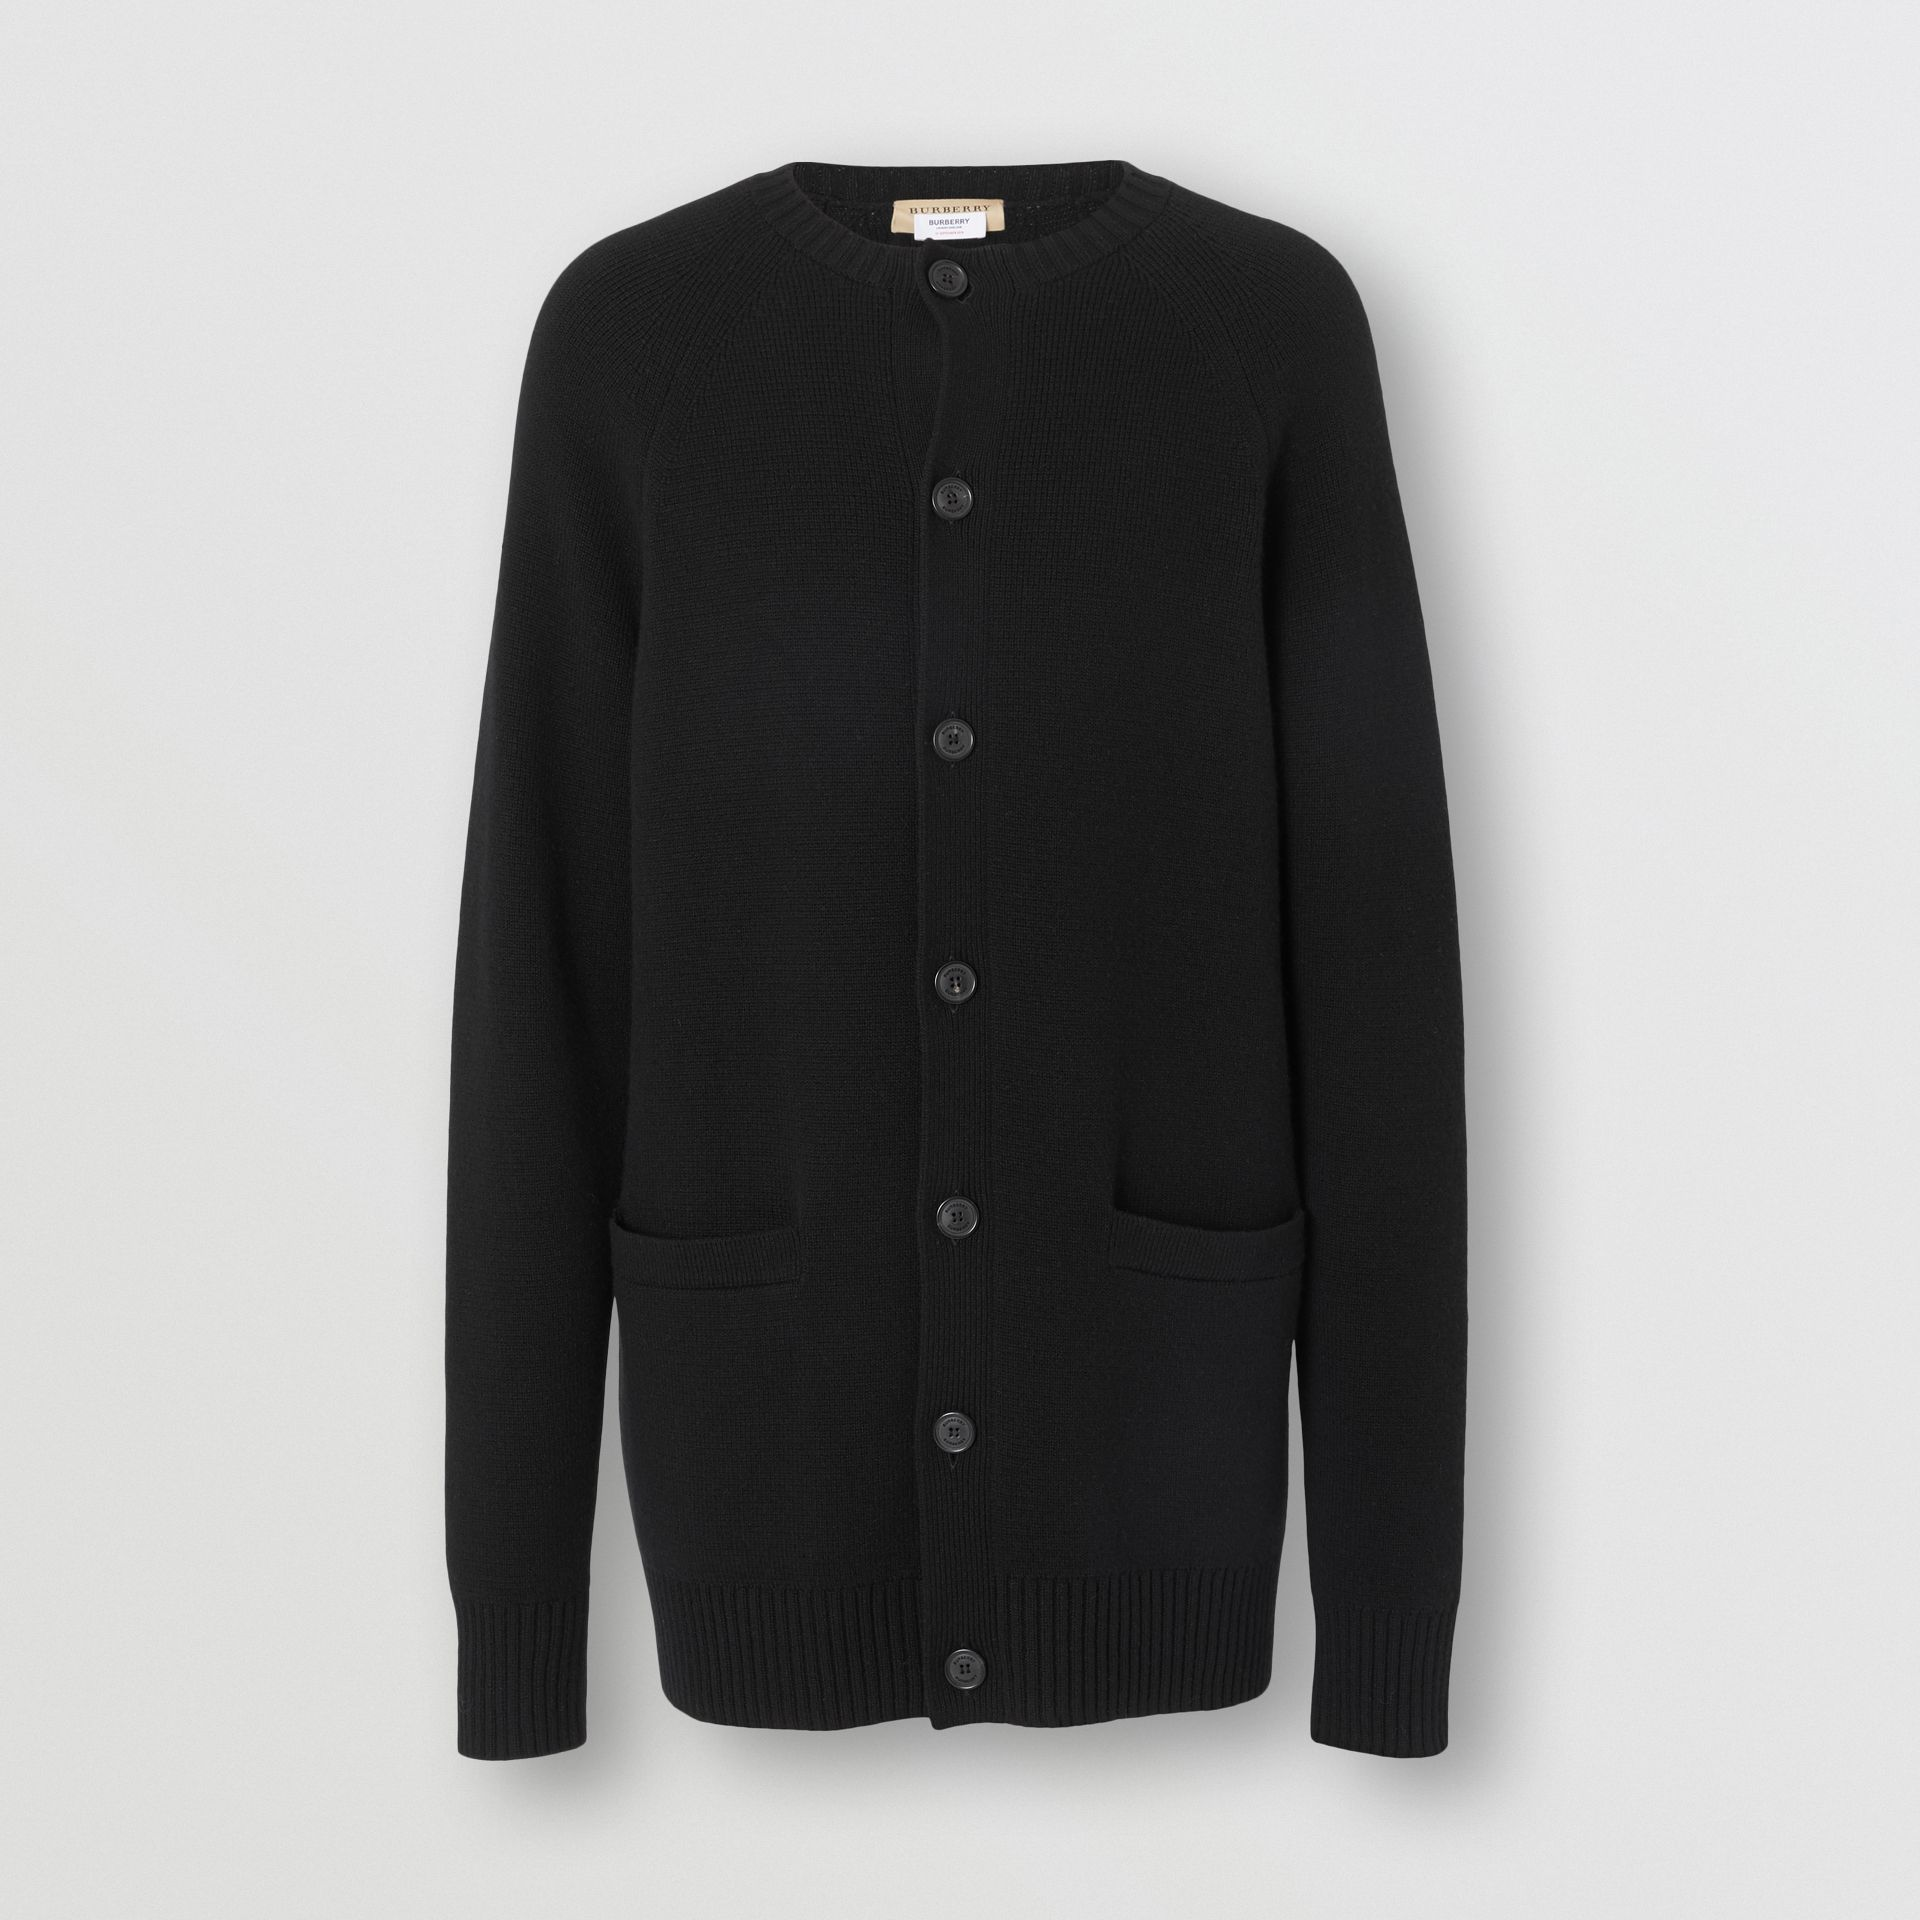 Cashmere Crew Neck Cardigan in Black | Burberry - gallery image 3